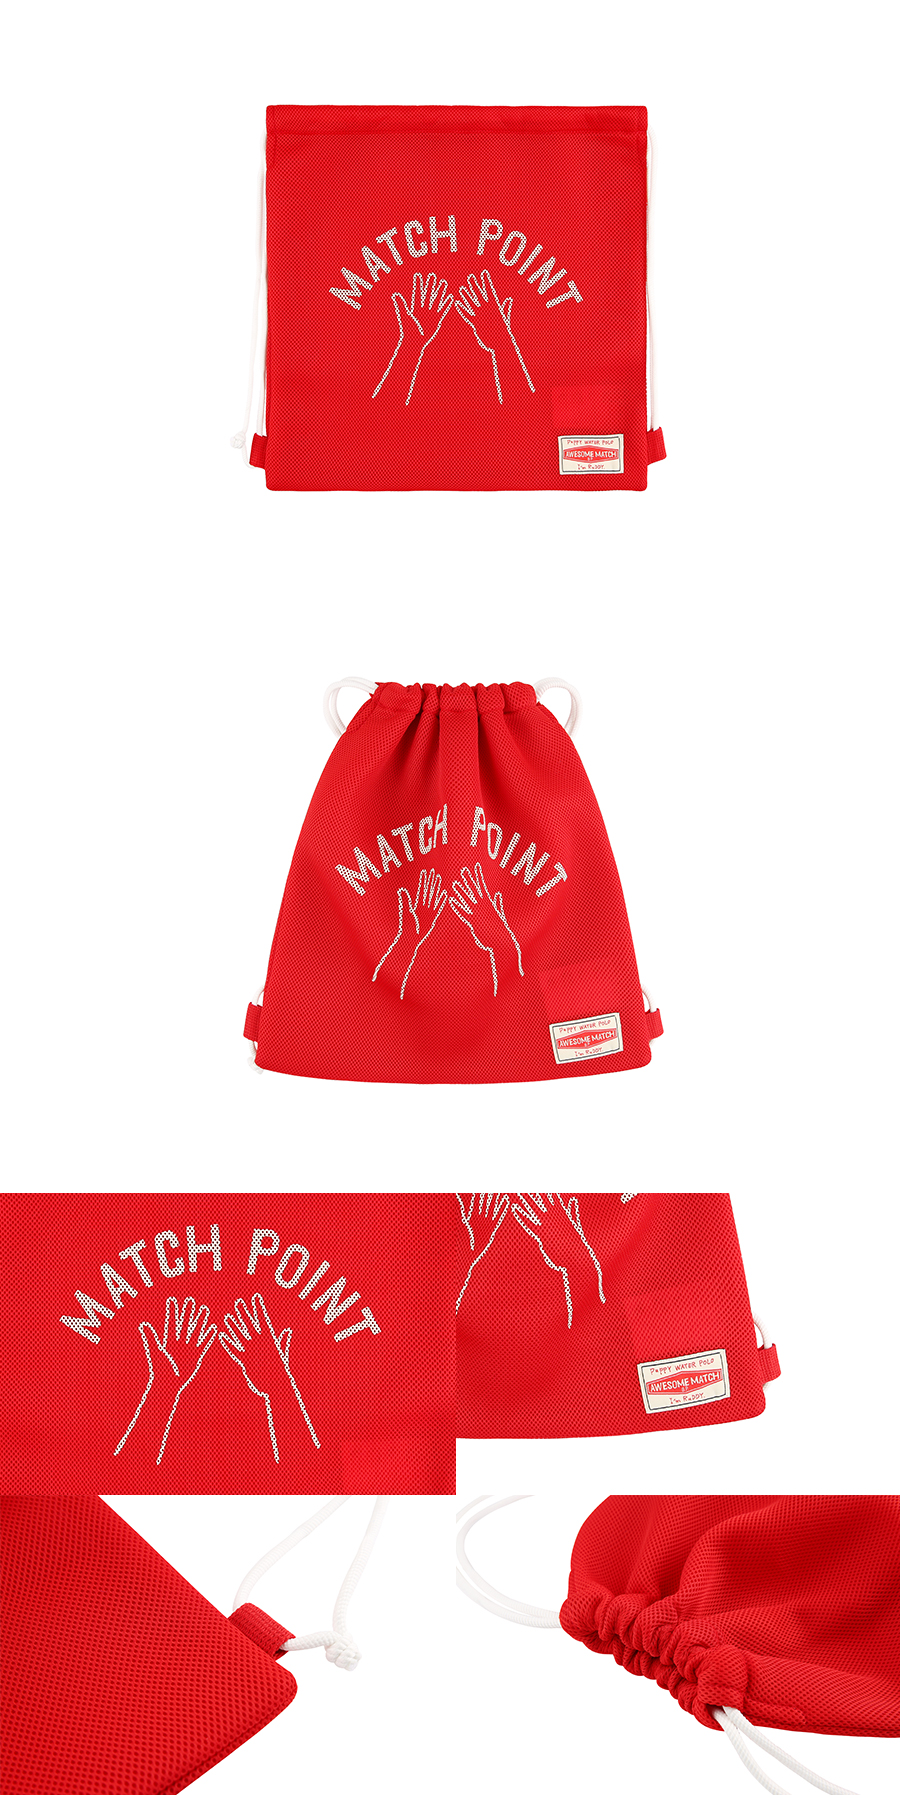 Match point mesh bag 상세 이미지